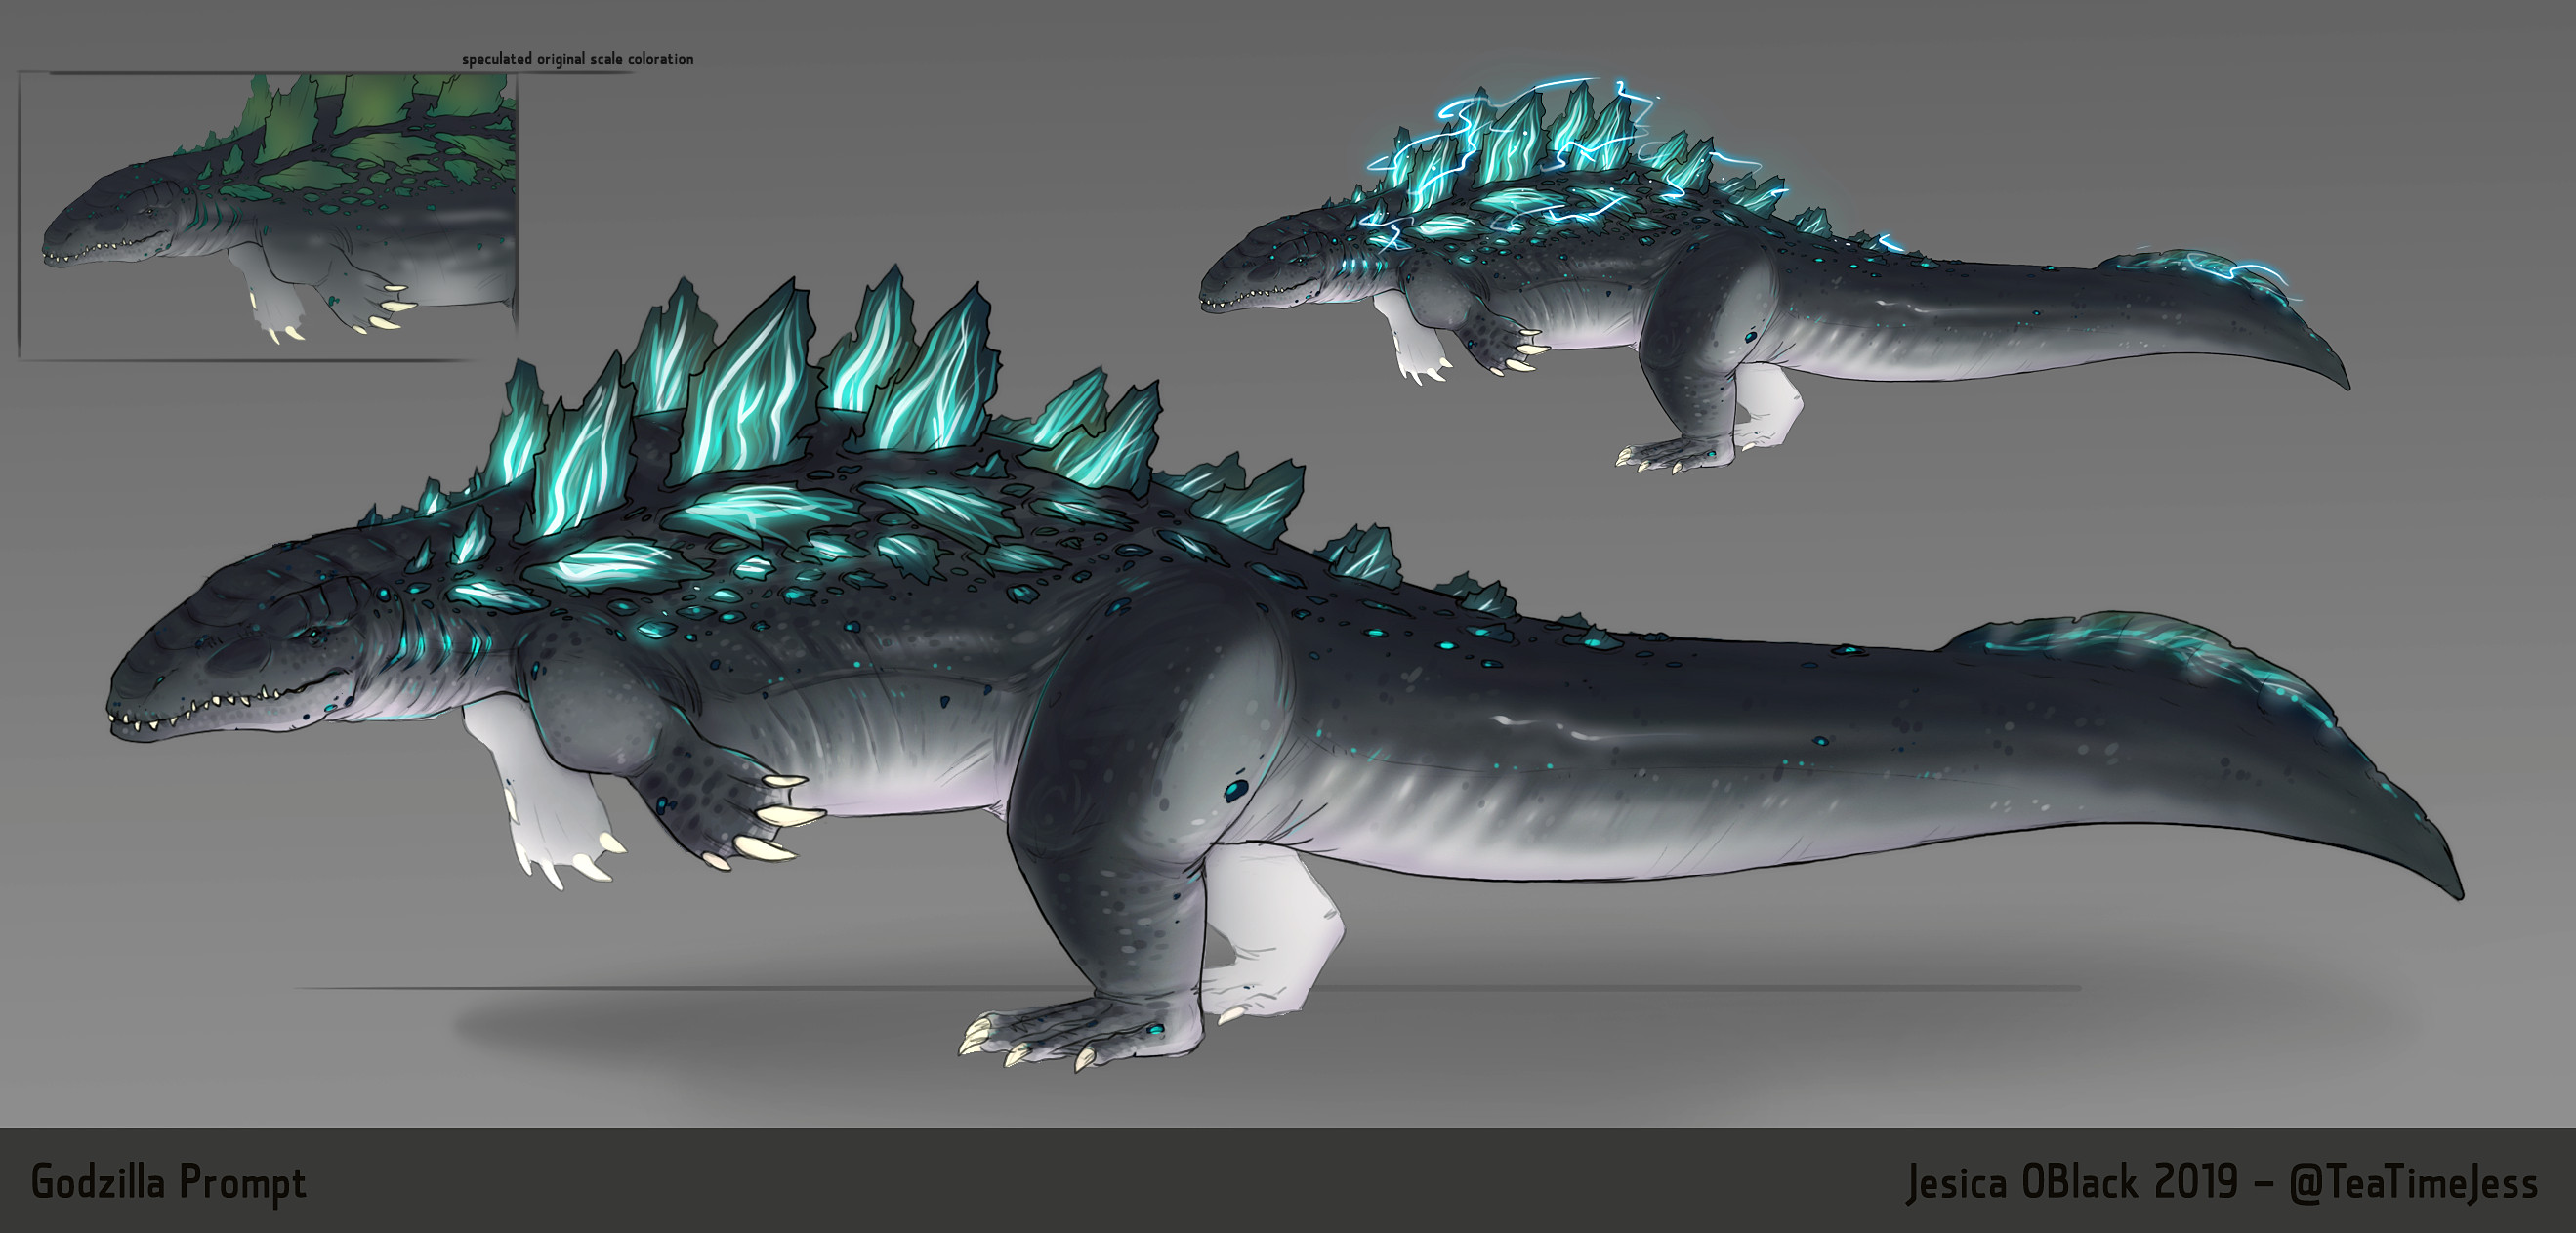 Godzilla Redesign for RJ Palmer's contest! I took the 'sea creature' approach.